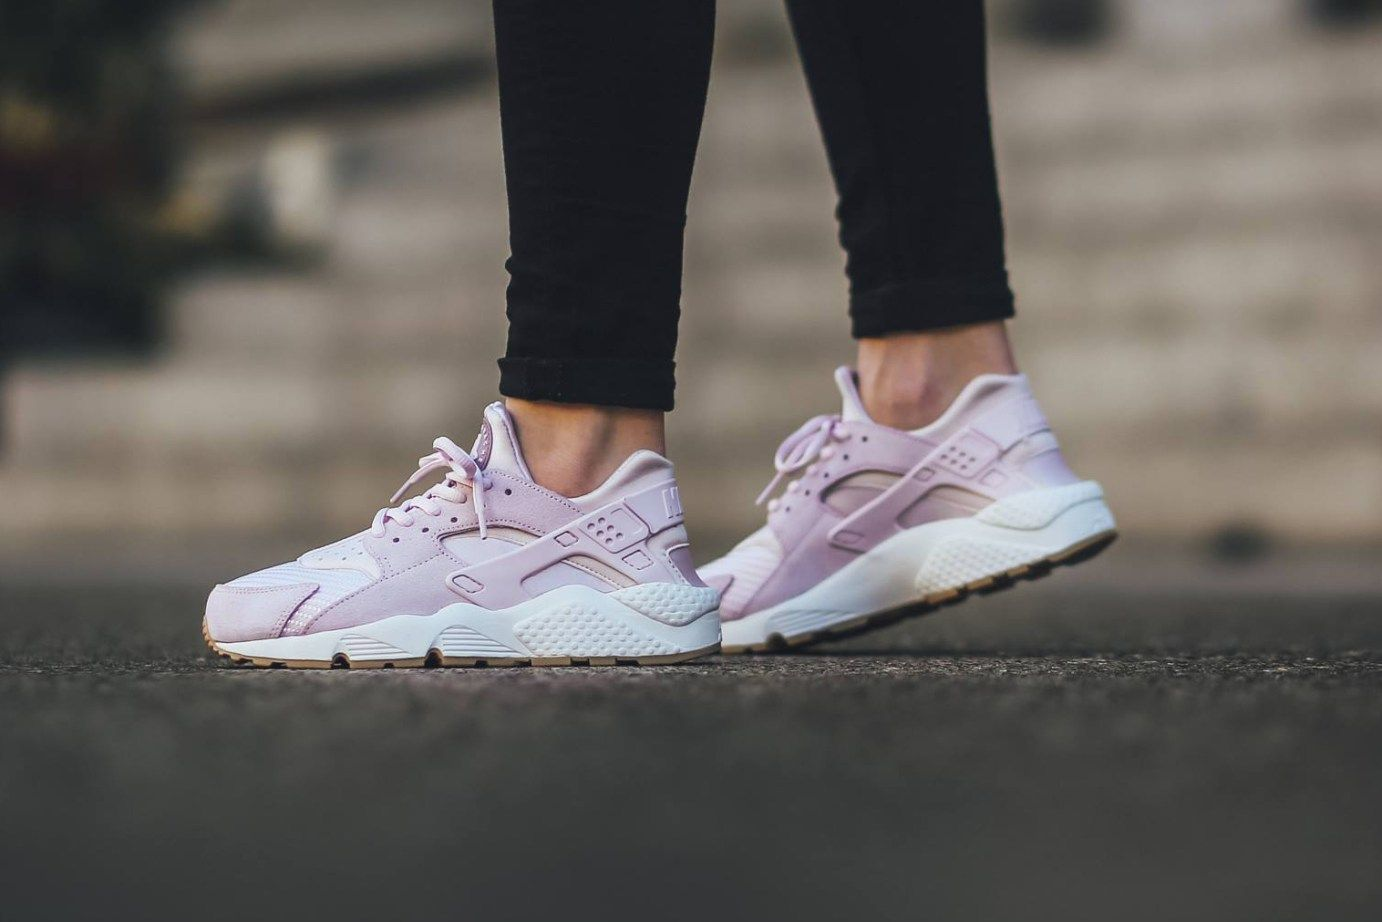 Nike WMNS Air Huarache Run Textile